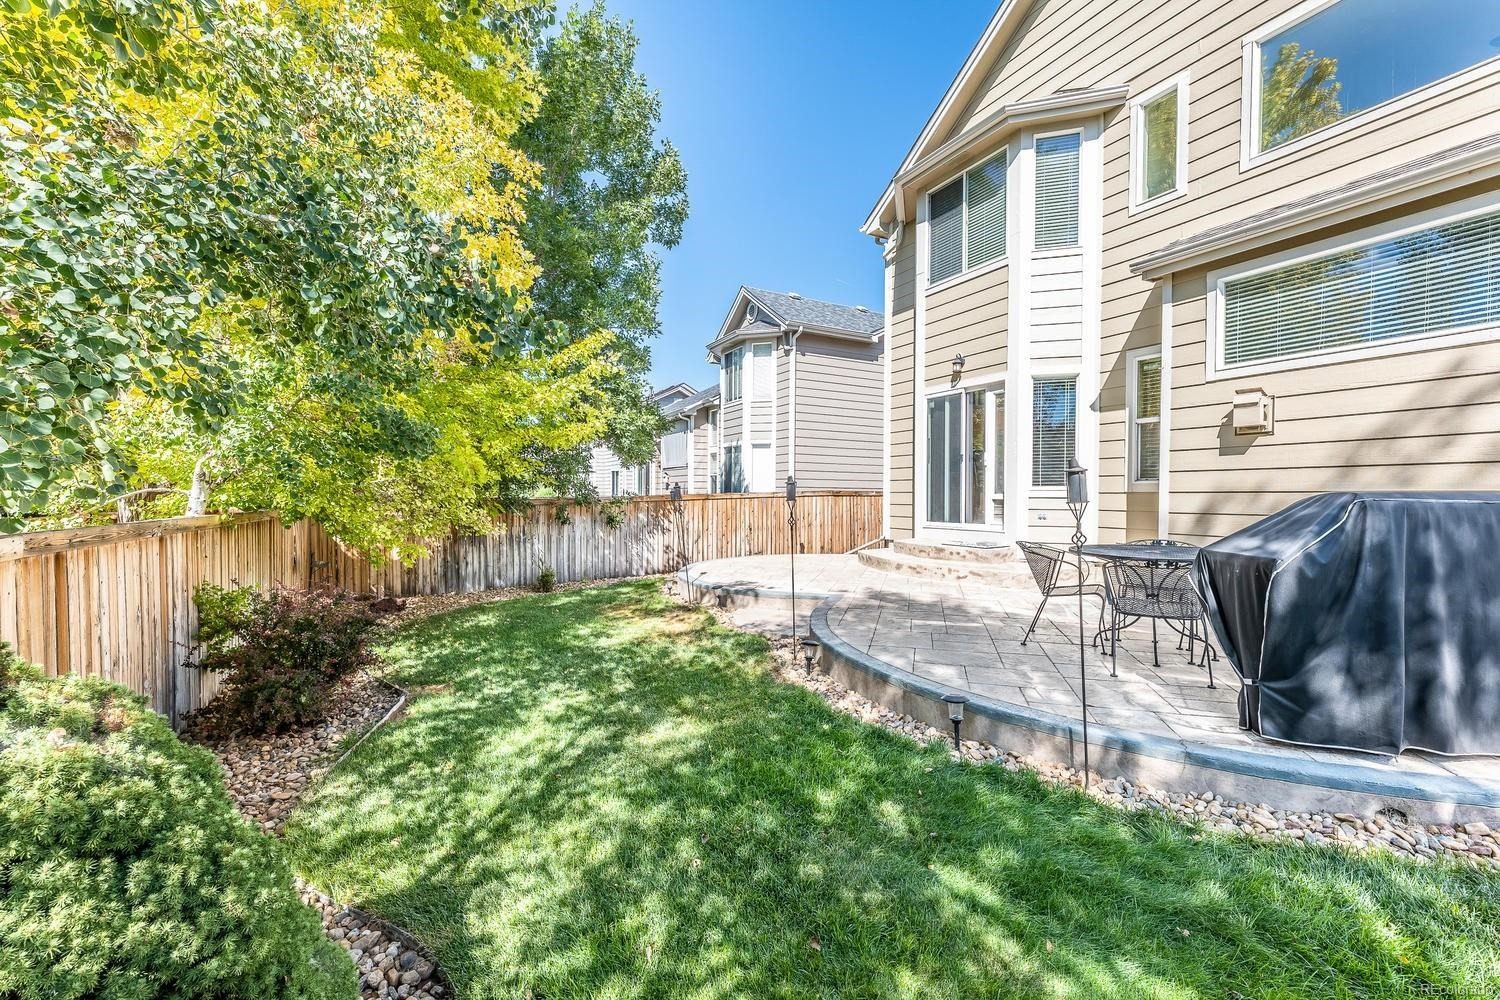 MLS# 1656537 - 32 - 14705 Elizabeth Street, Thornton, CO 80602